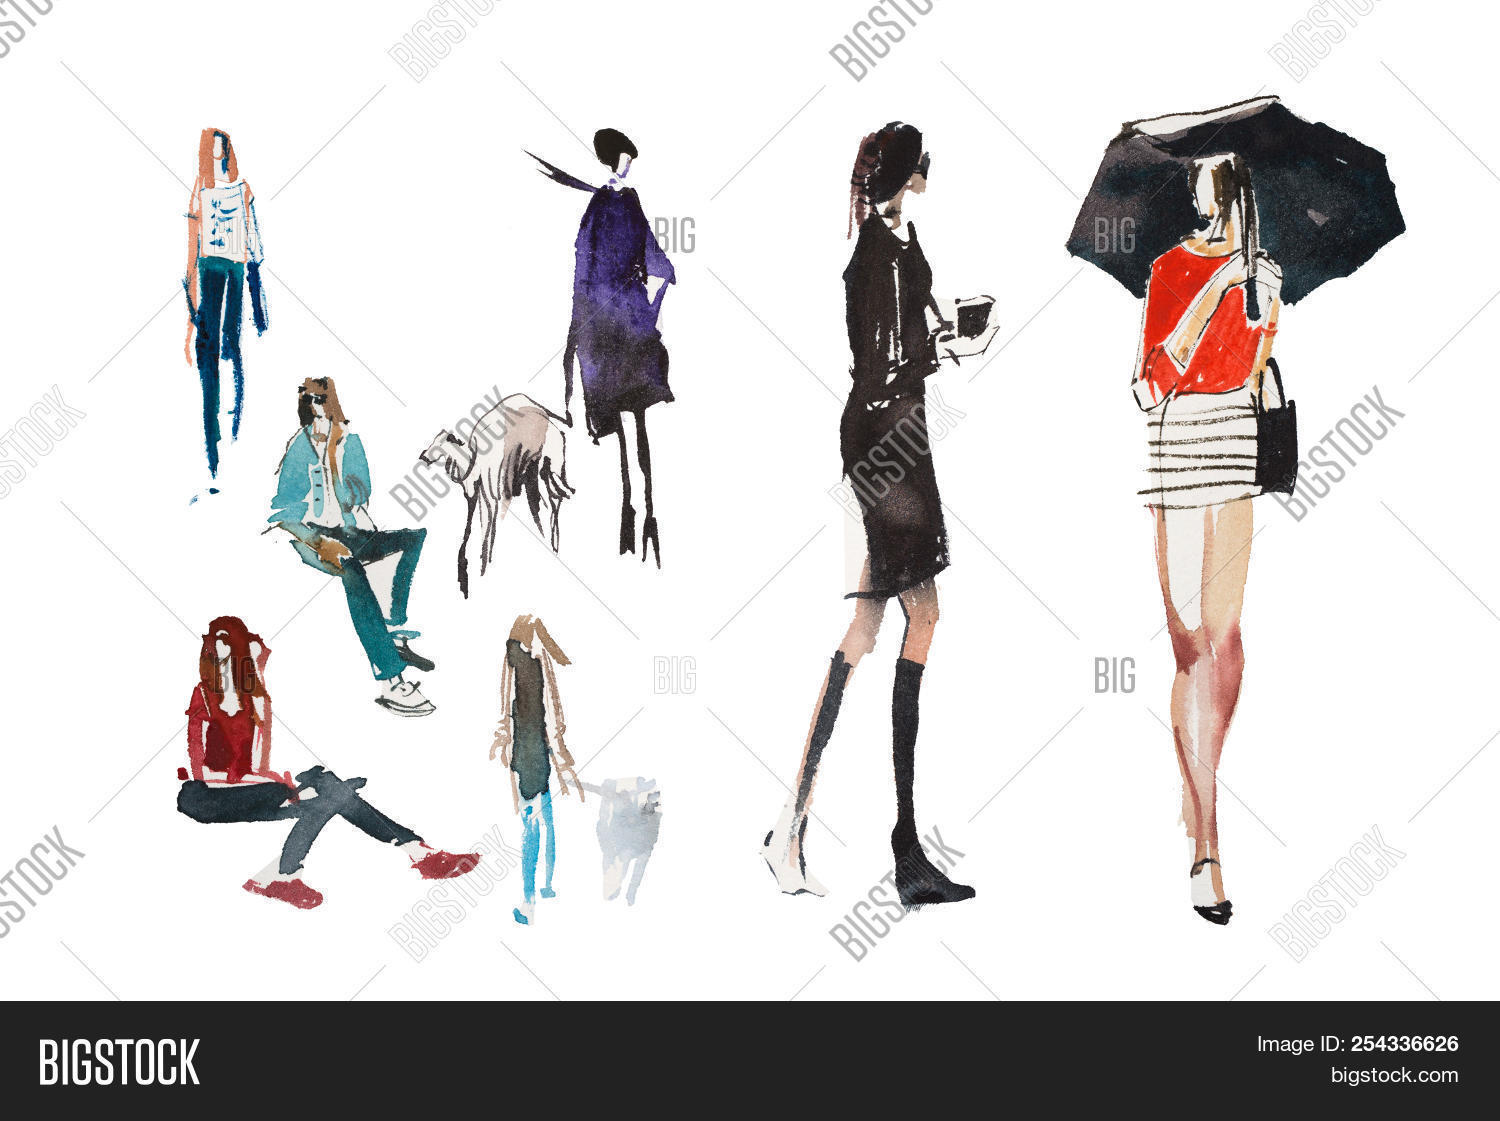 Different Types Image Photo Free Trial Bigstock